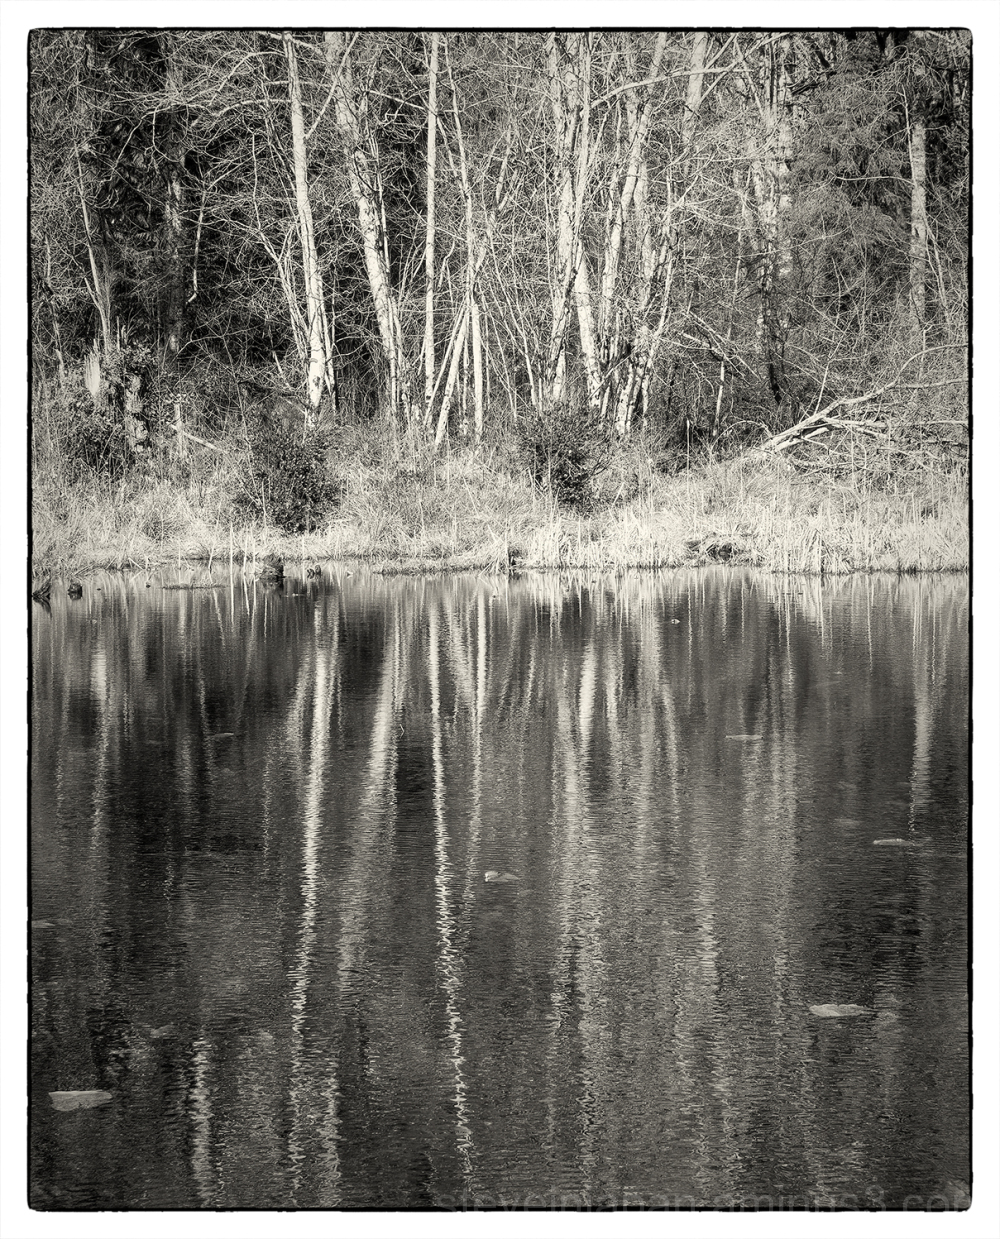 Alder reflectionsl at McLane Creek.